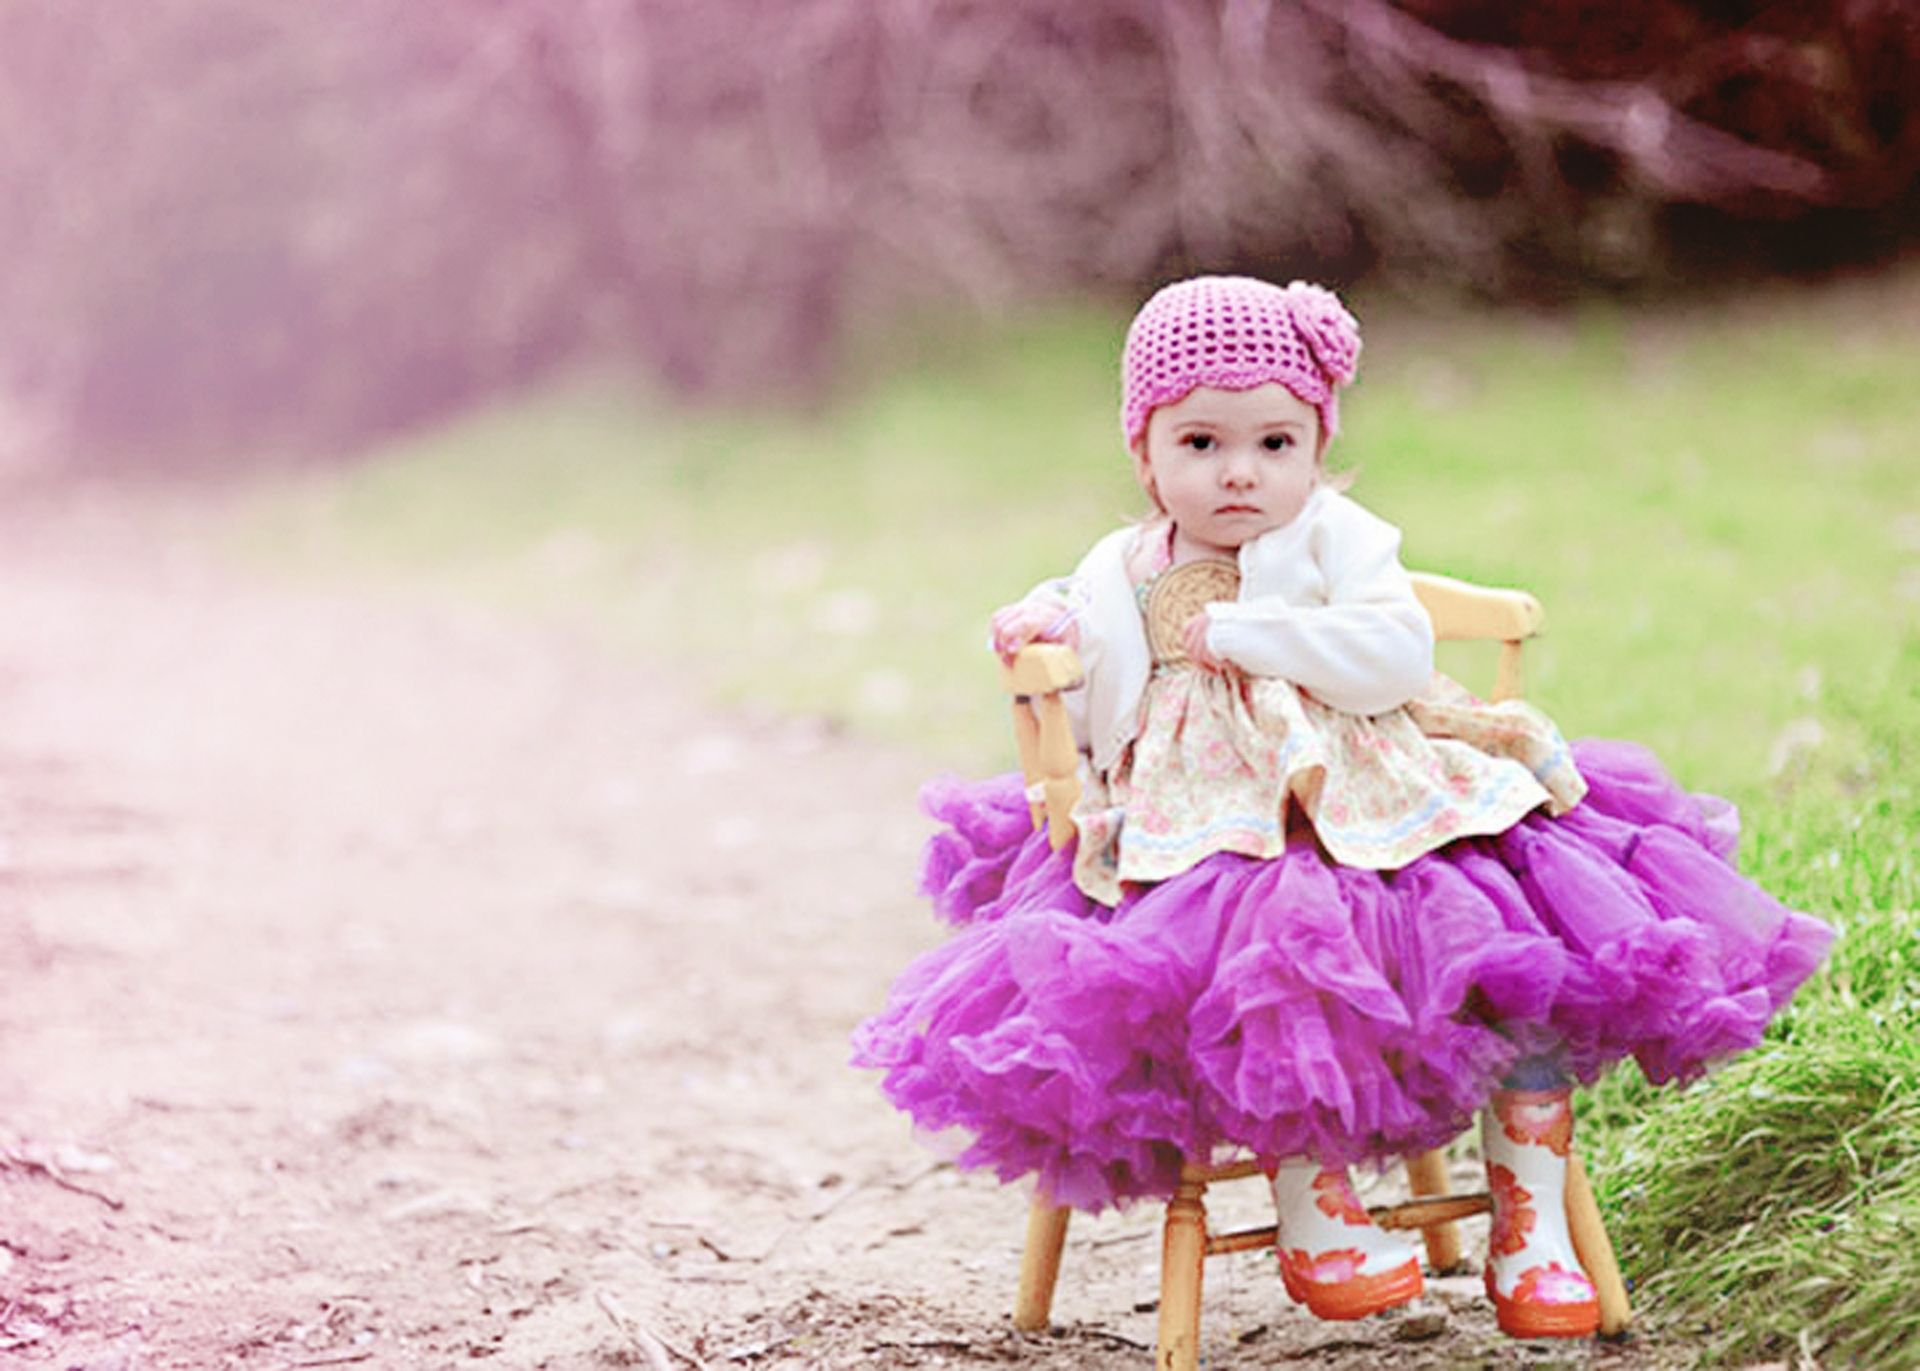 baby wallpaper pictures of cute babies best collection | wallpapers